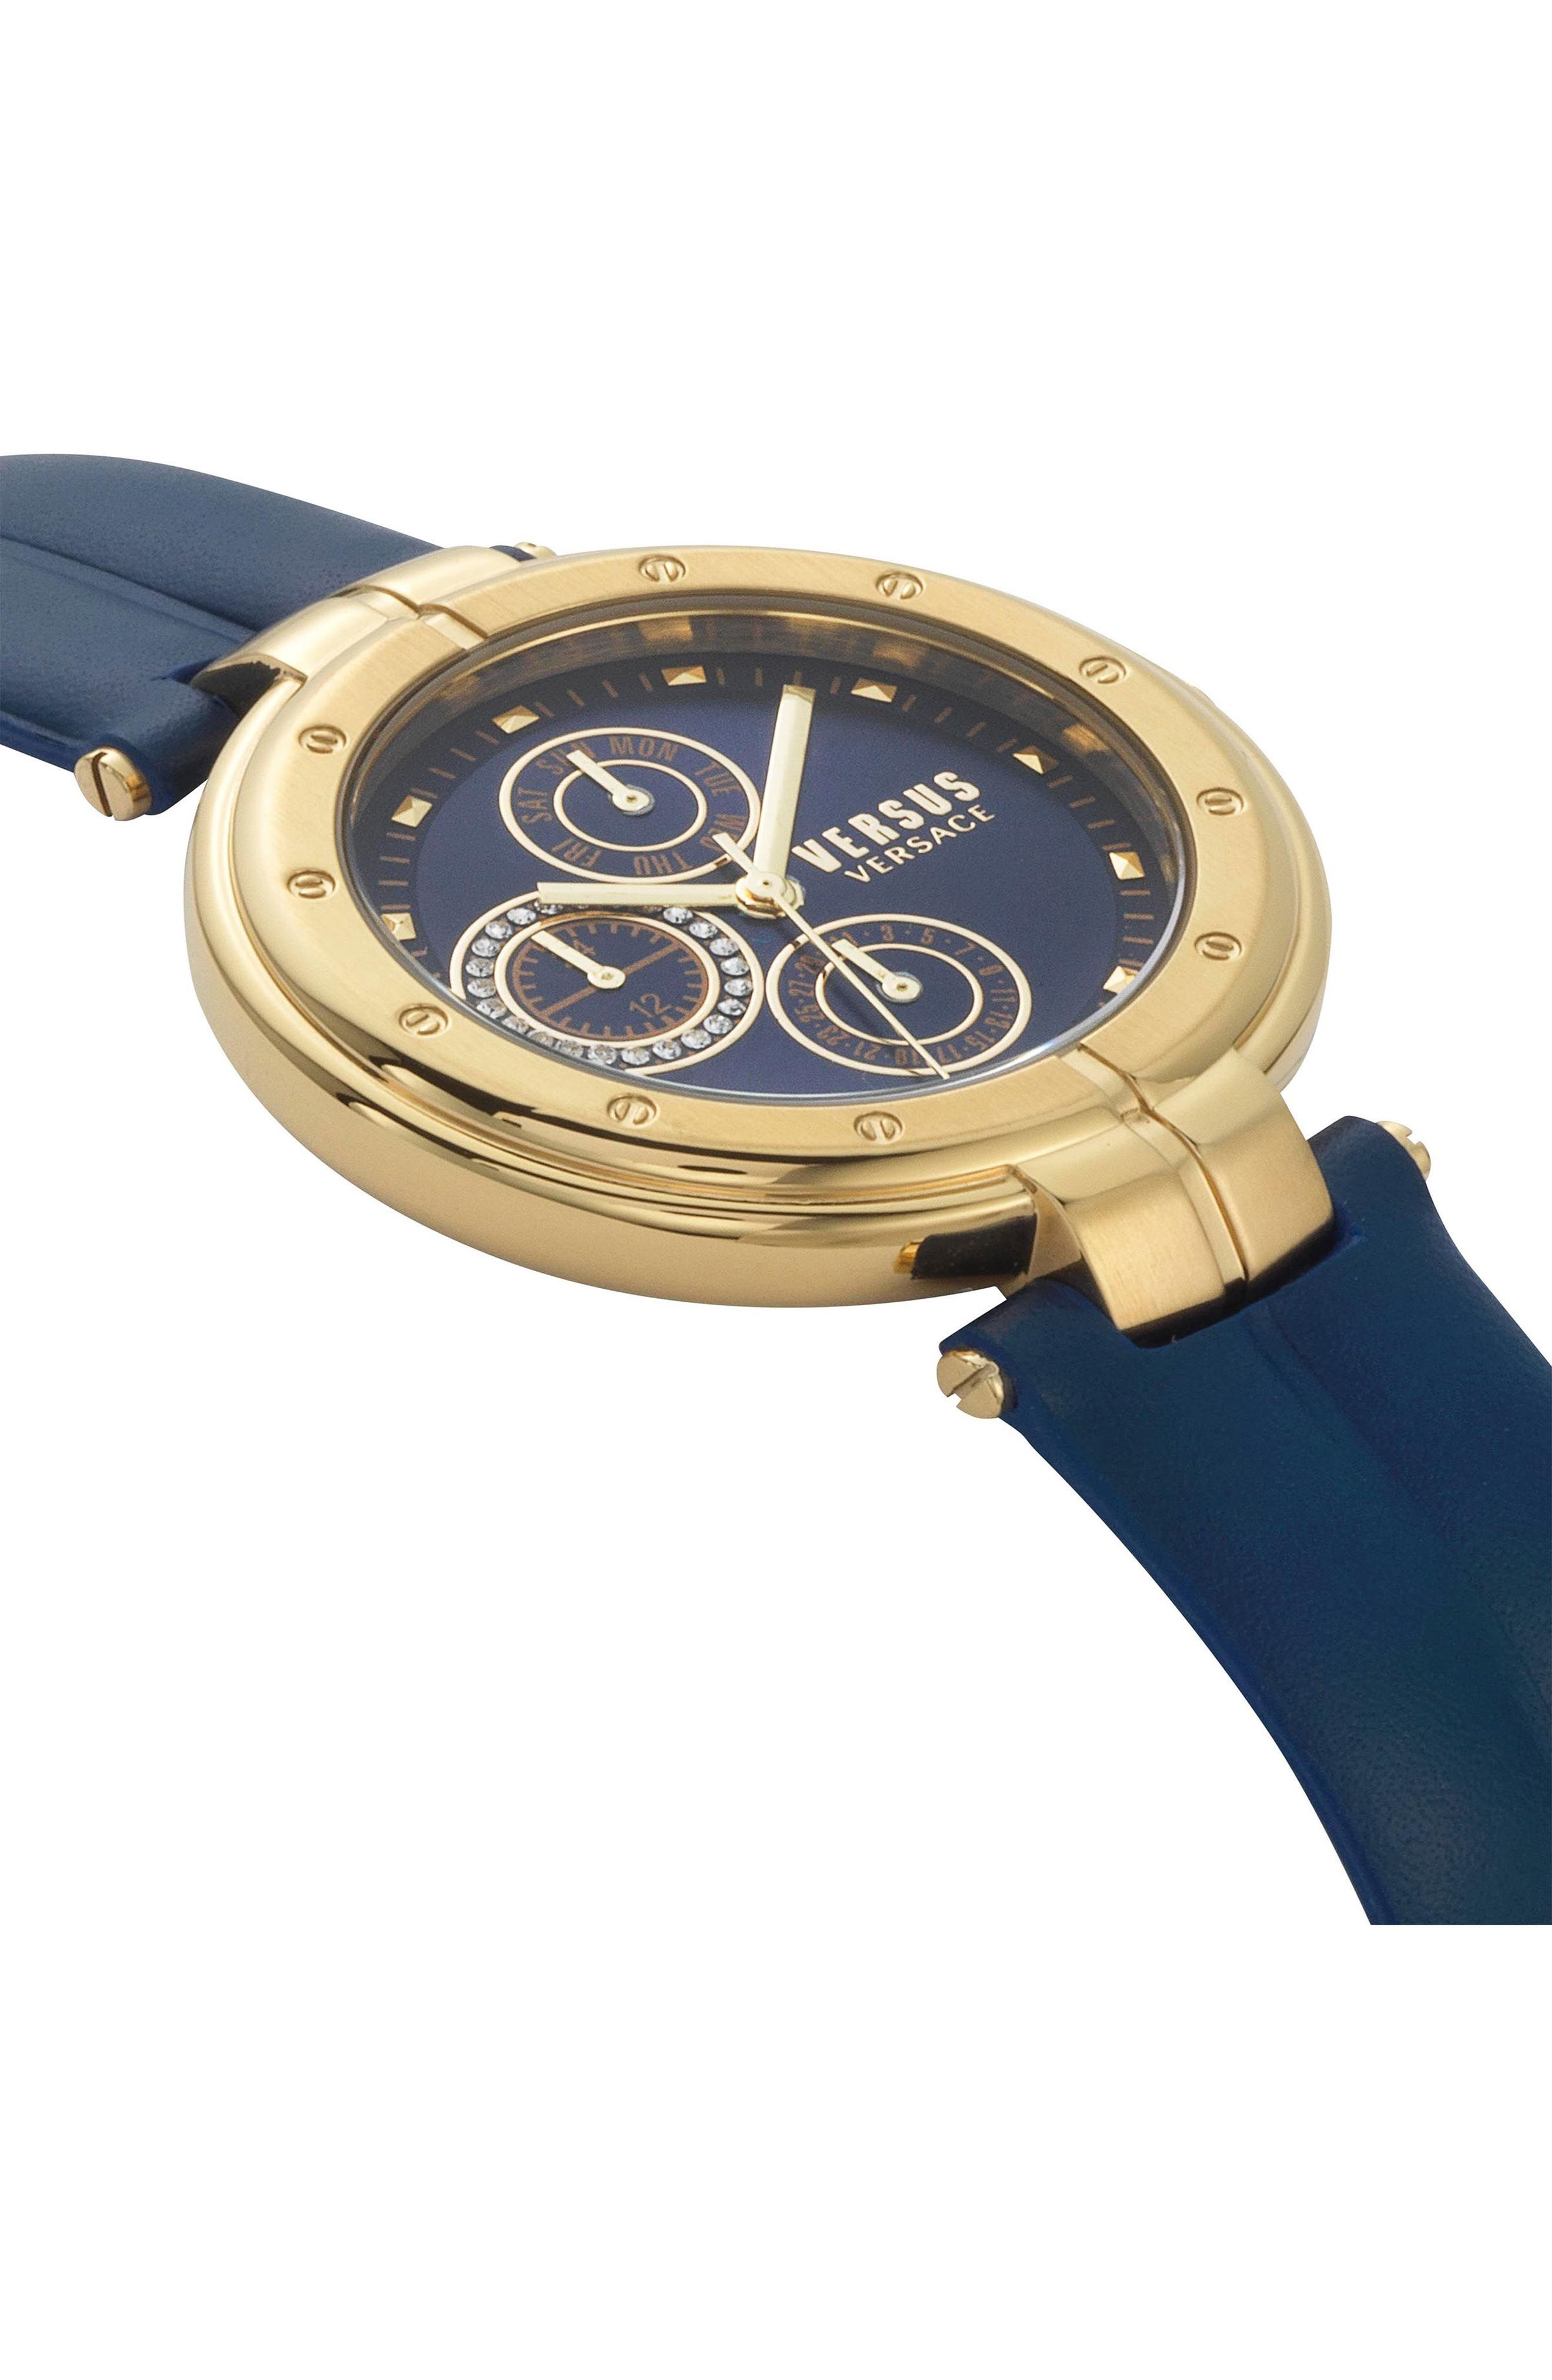 VERSUS by Versace Bellville Leather Strap Watch, 38mm,                             Alternate thumbnail 3, color,                             Blue/ Gold